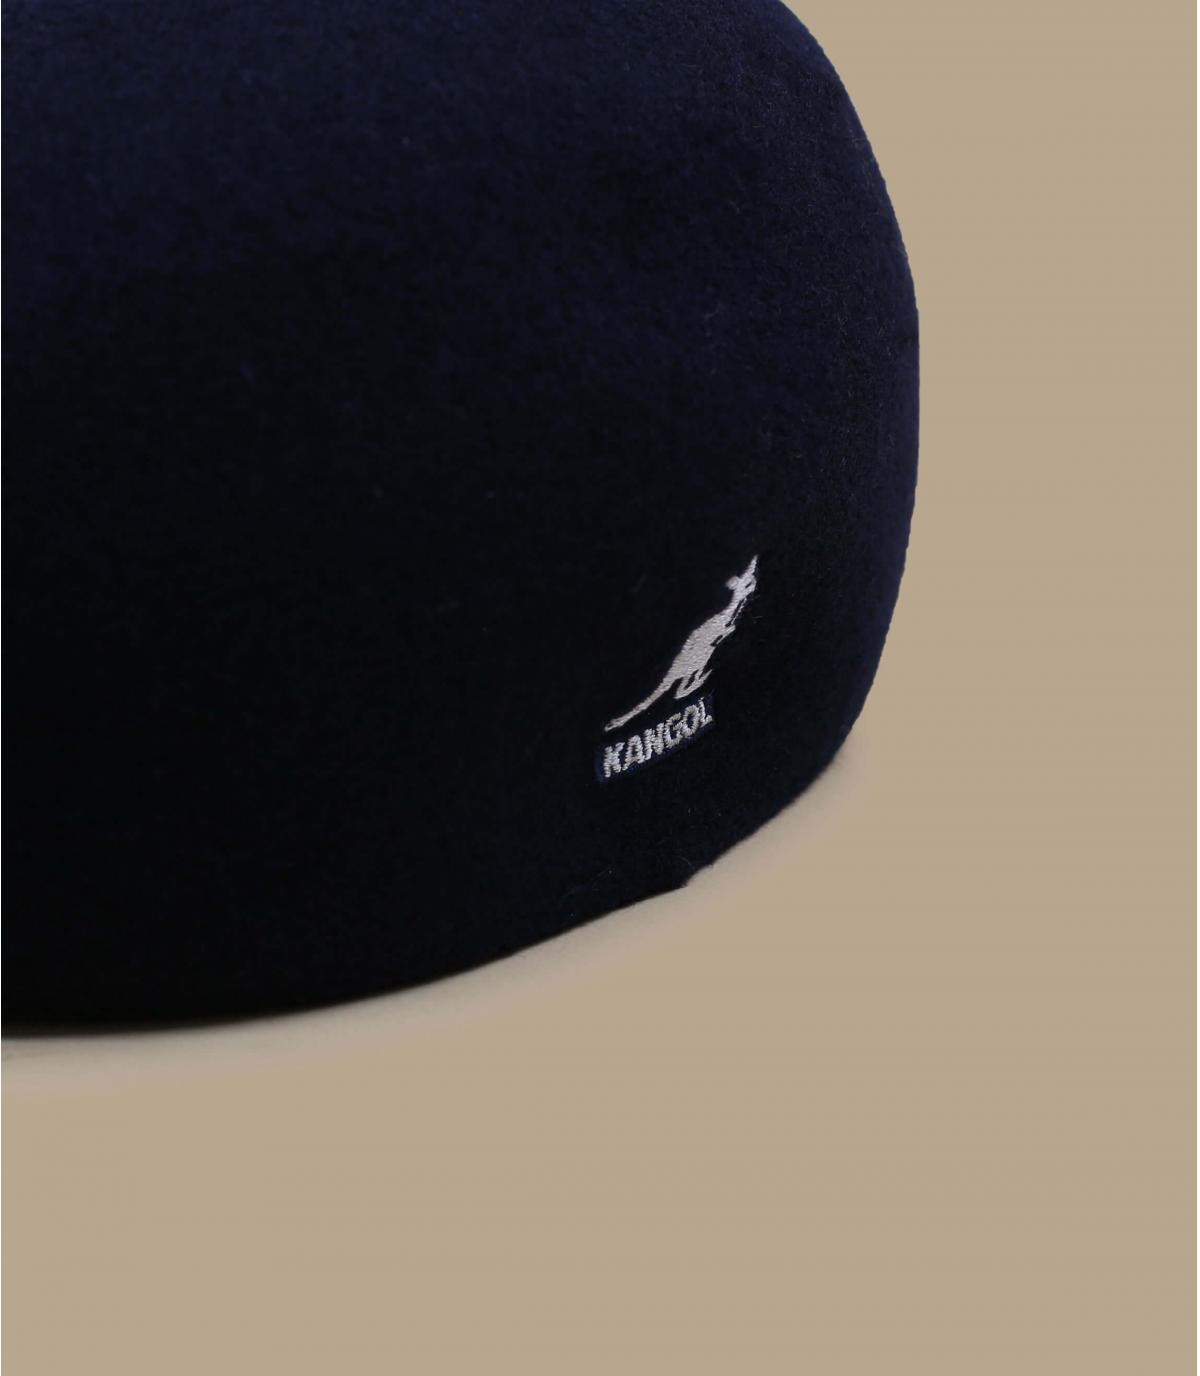 Détails 507 wool seamless navy - image 2